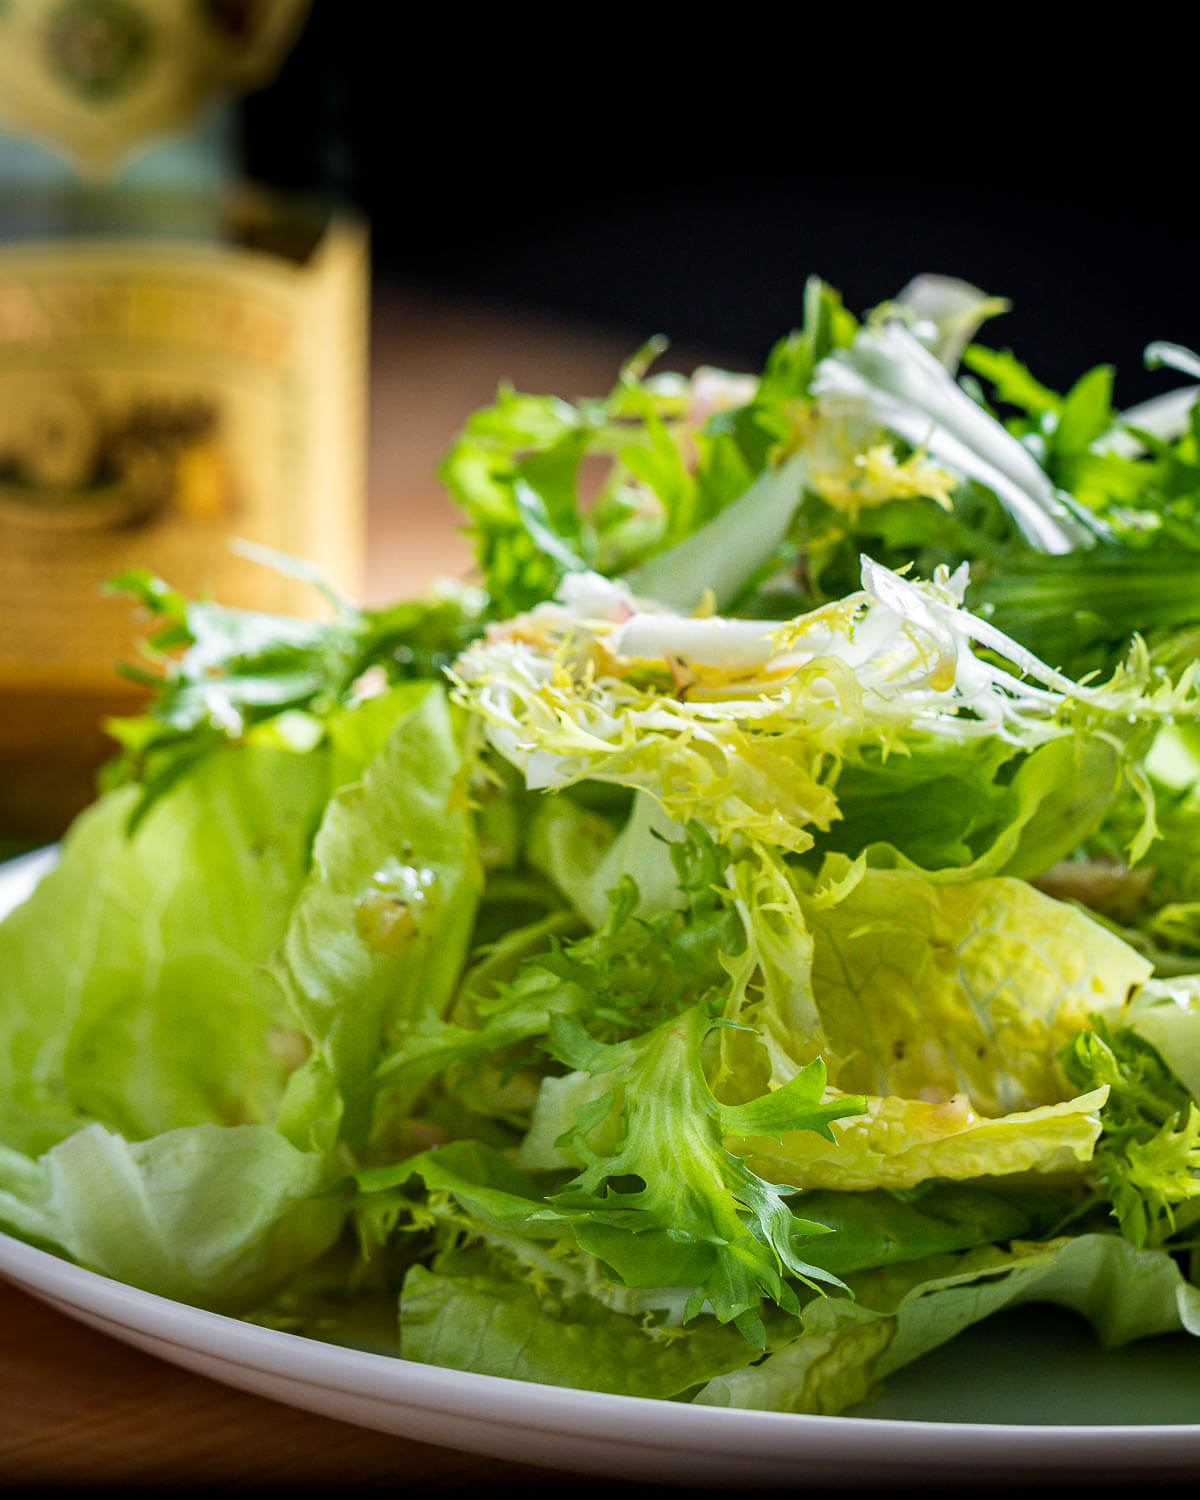 Plate of piled high lettuce greens with bottle of olive oil in background.